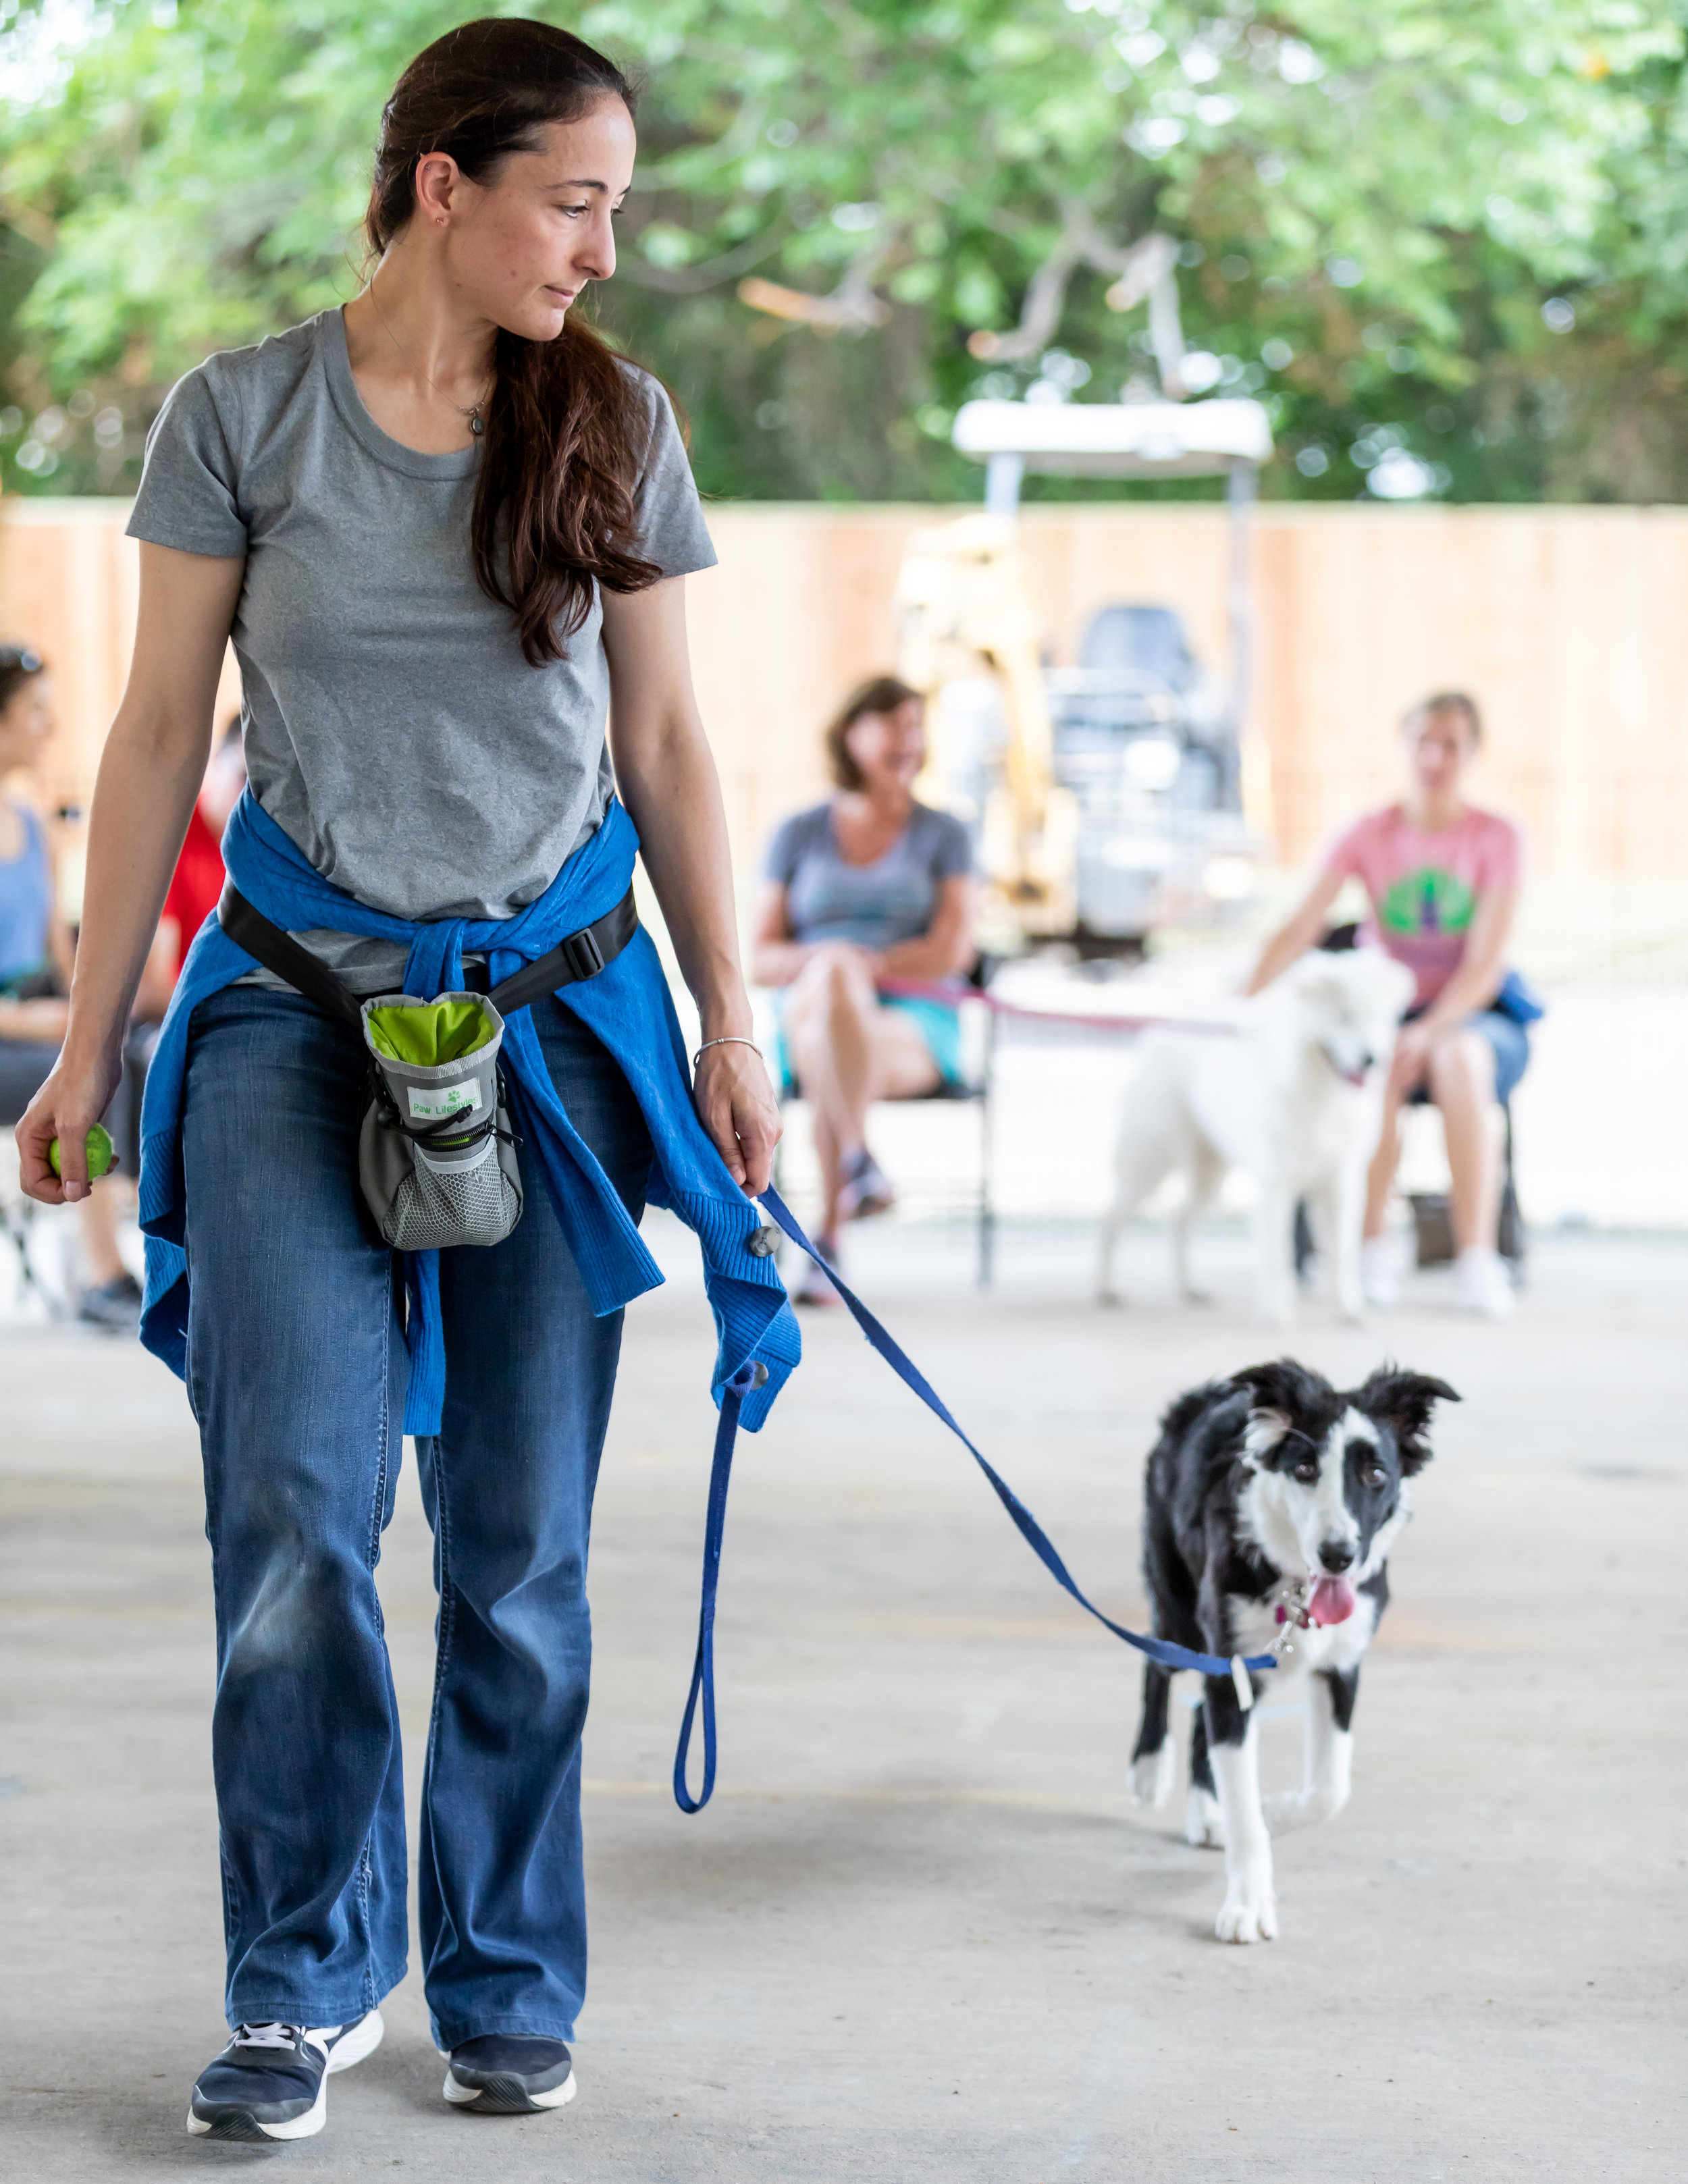 Loose Leash Walking - Can you walk your dog while holding your leash and an egg in a spoon, in the same hand?Must have completed at least one of the following classes or packages:Puppy Class Part 1, Basic Manners, Puppy Day School Package of 10 or 20, or Private Lesson Package of 3Details:• Skills Clinics are $70 each and 90 minutes long• Proof of Rabies, DHLLPP/DA2P, and Bordetella are required.Upcoming Dates:September 20th @ 6:30pm